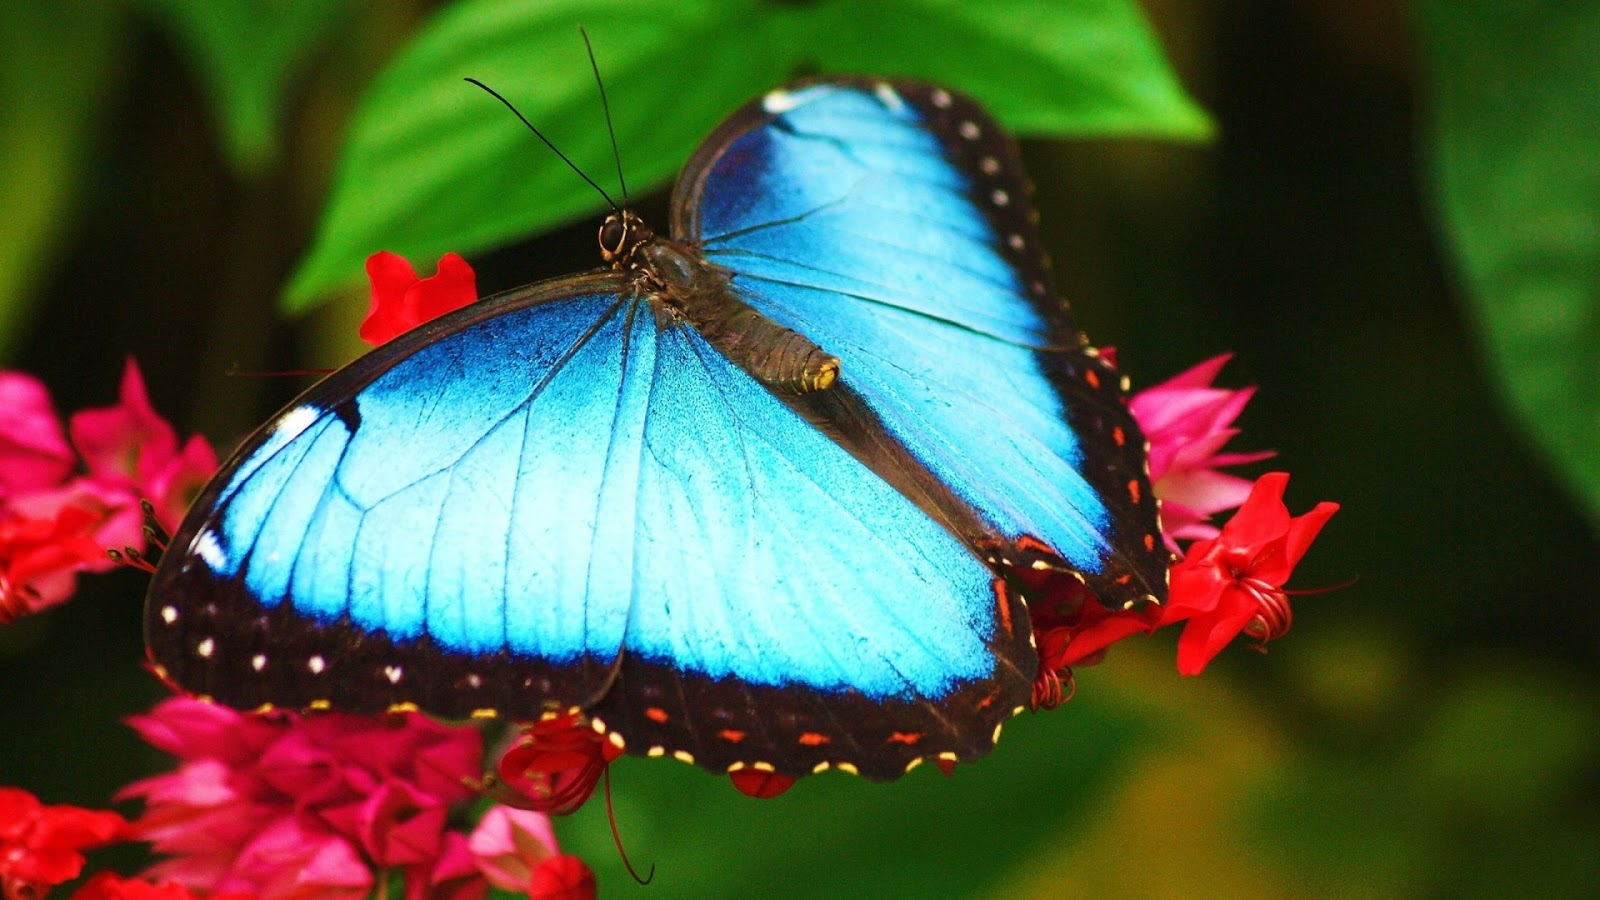 All Wallpapers Butterfly hd wallpapers 2013 1600x900